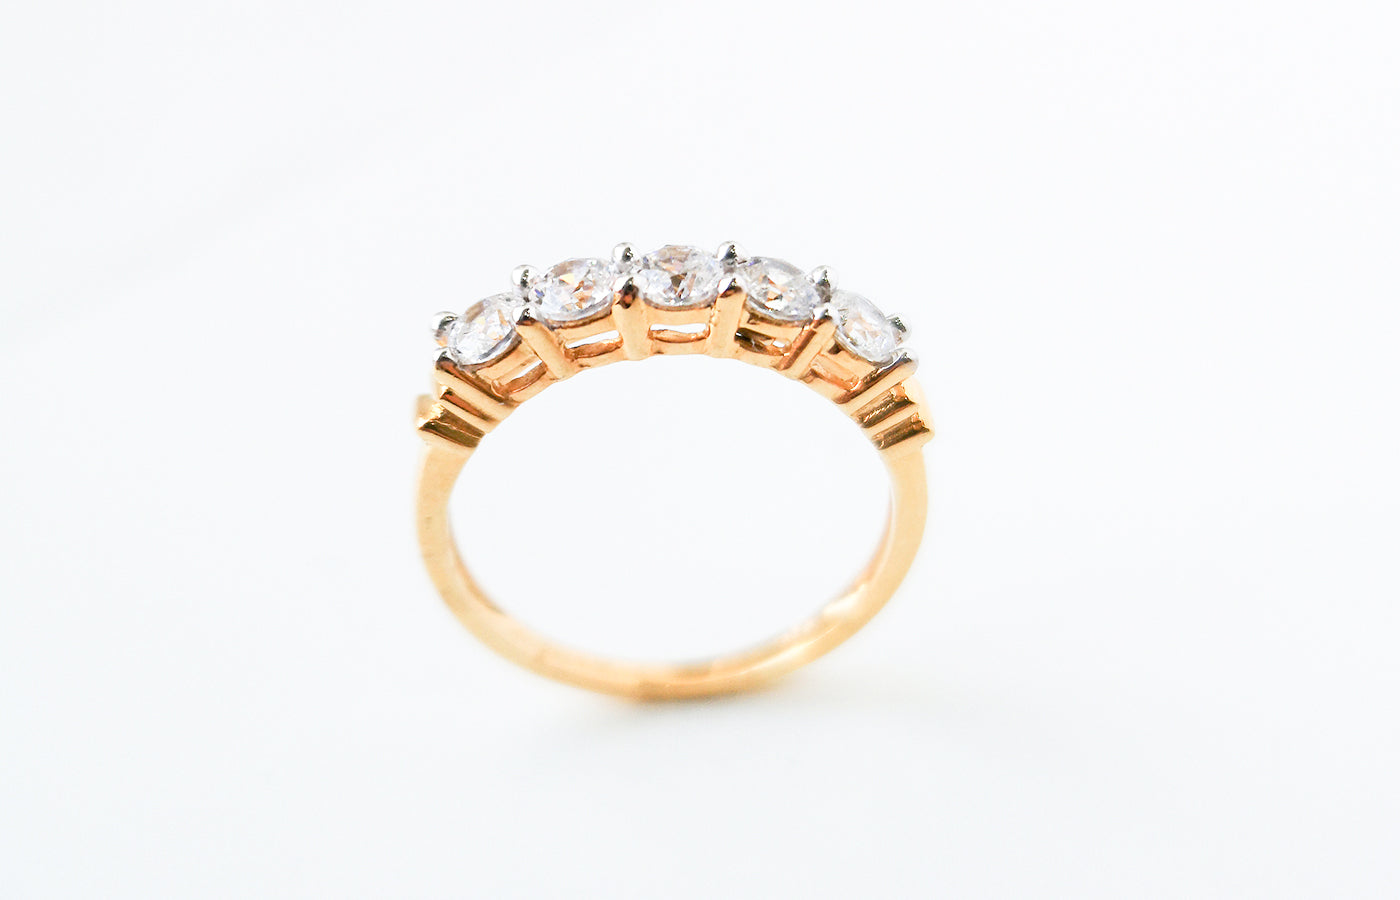 22ct Gold Eternity Ring set with Swarovski Zirconias LR14554